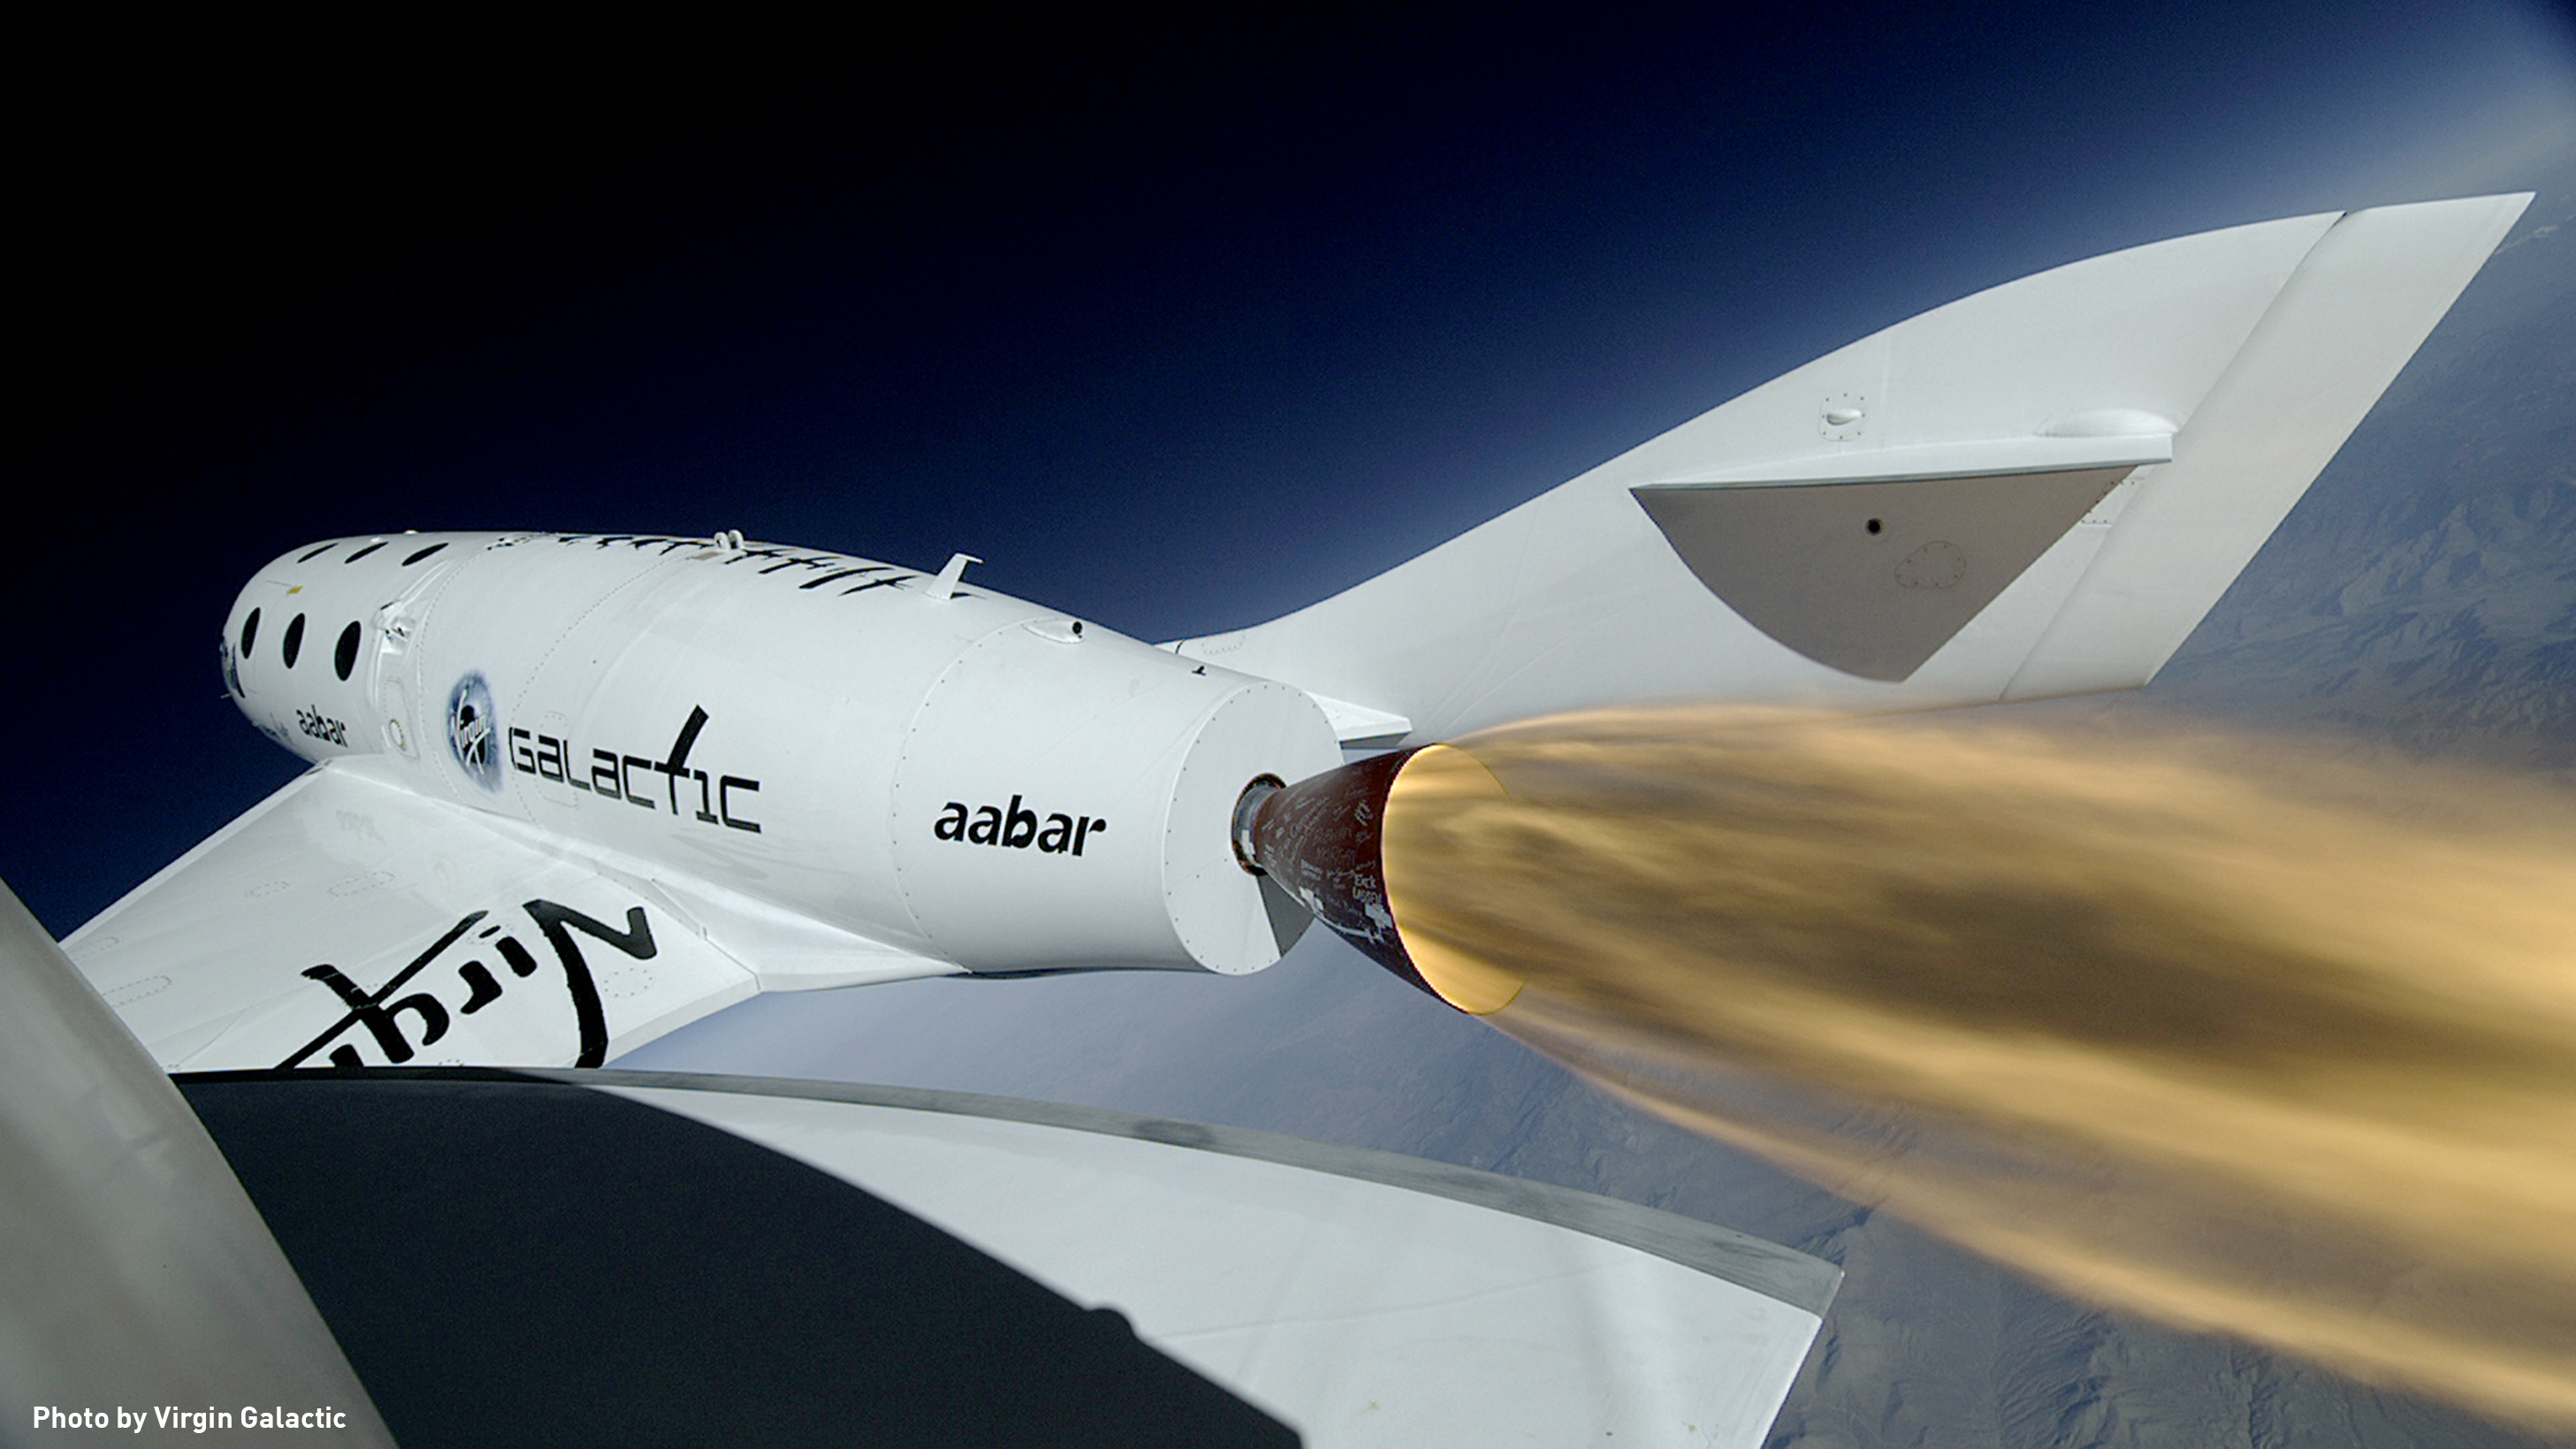 virgin galactic unveils new spaceshiptwo vehicle that will replace